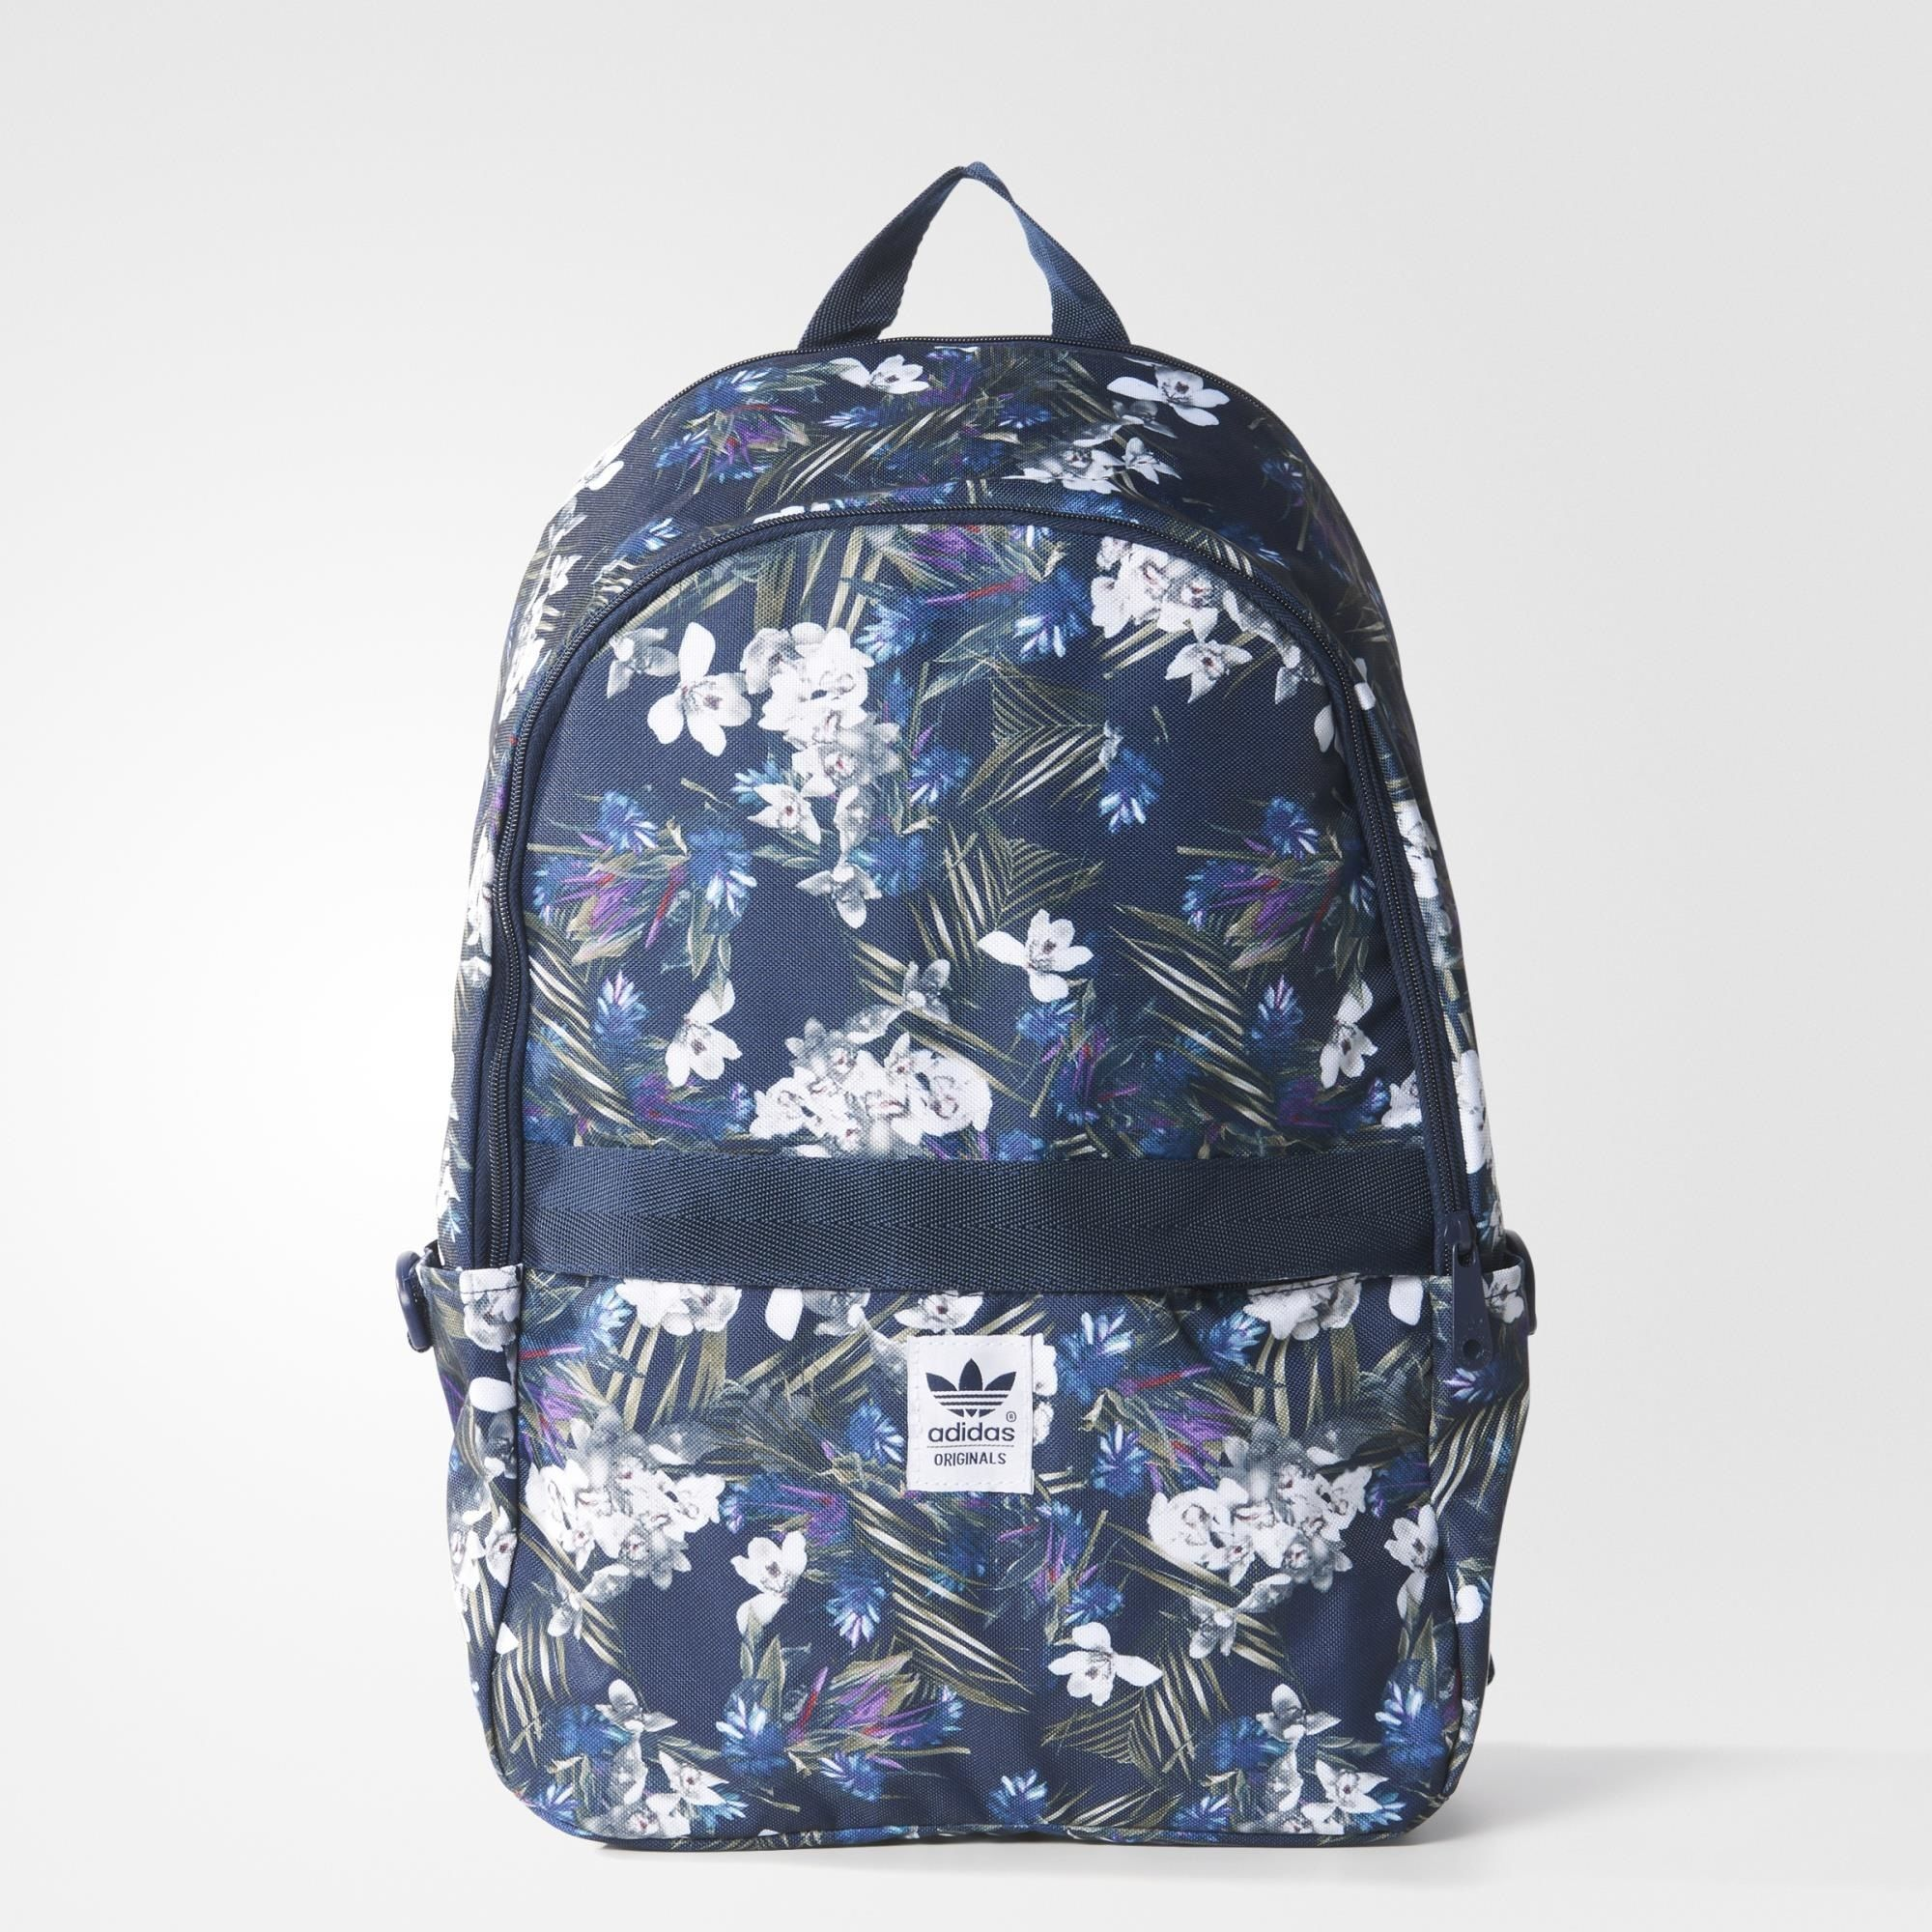 adidas Dark Floral Backpack - Multicolor  494d02f0d7f09